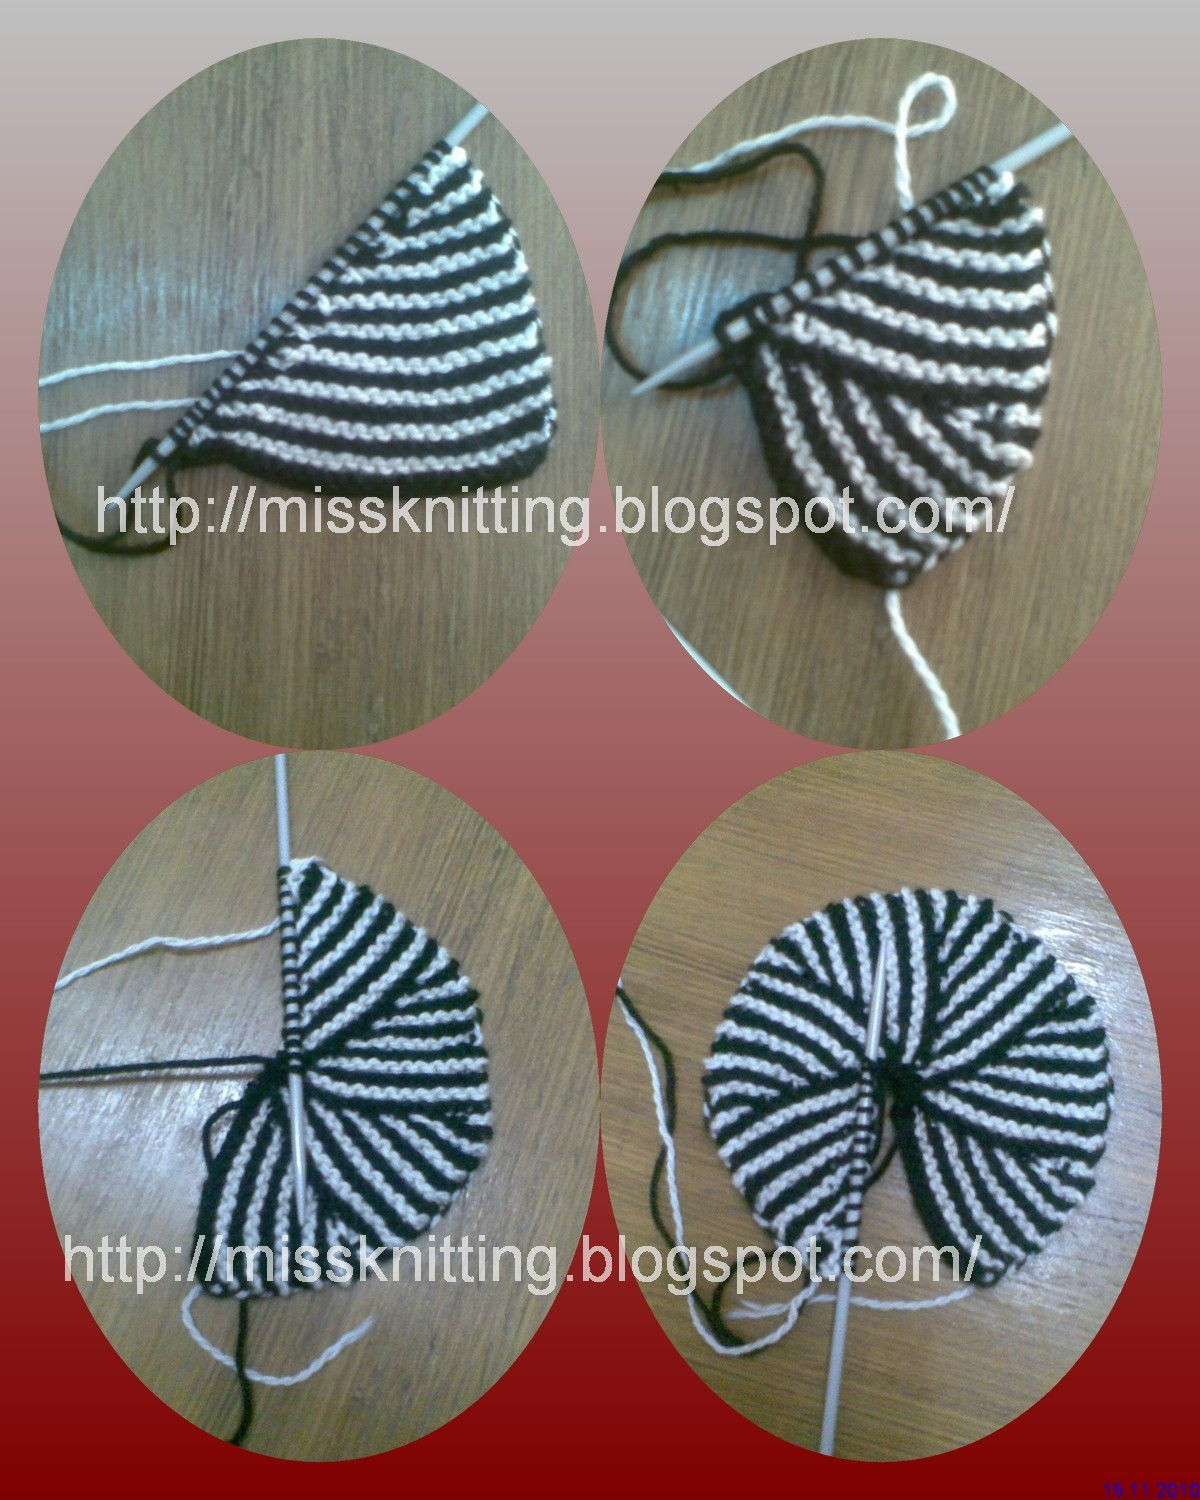 Modular Knitting Patterns Free : Miss Knitting: Pinwheel-Modular knit